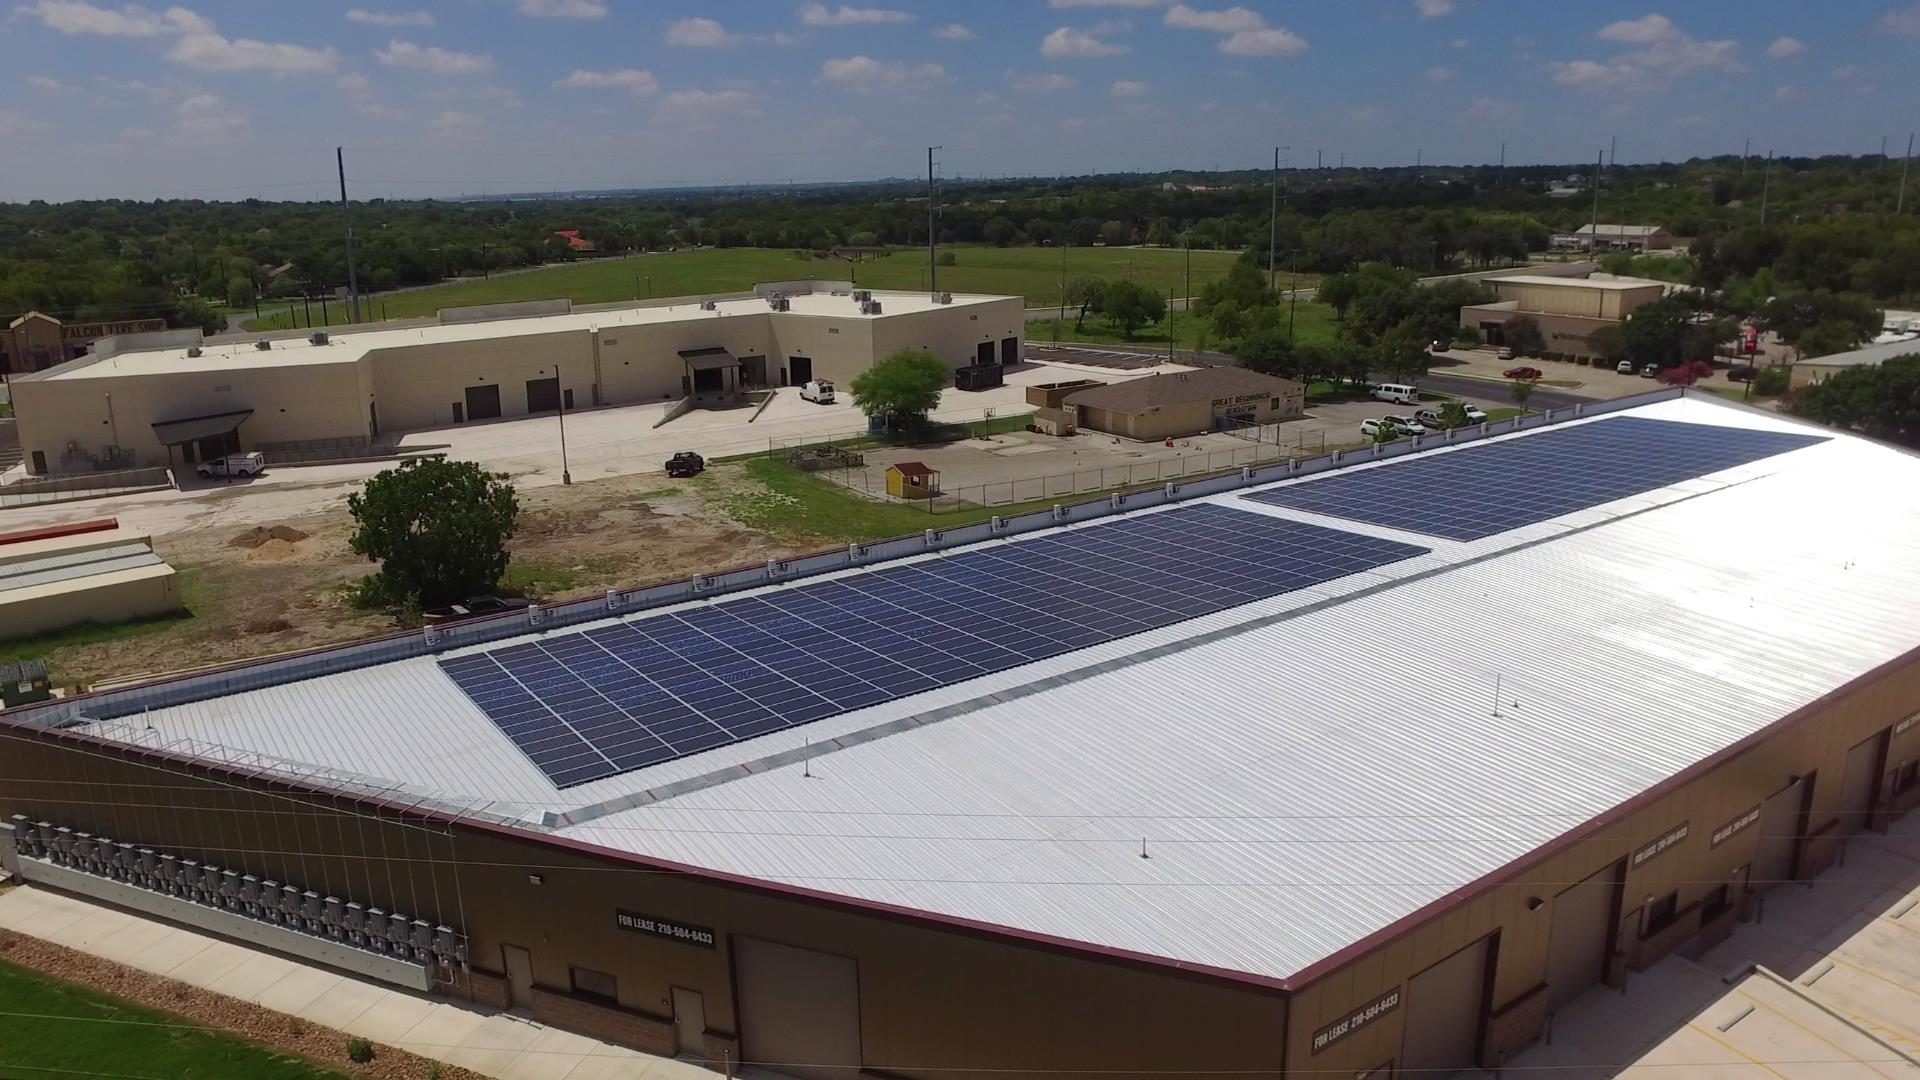 hight resolution of timco large commercial solar project installed by advanced solar electric llc san antonio food bank solar panel install